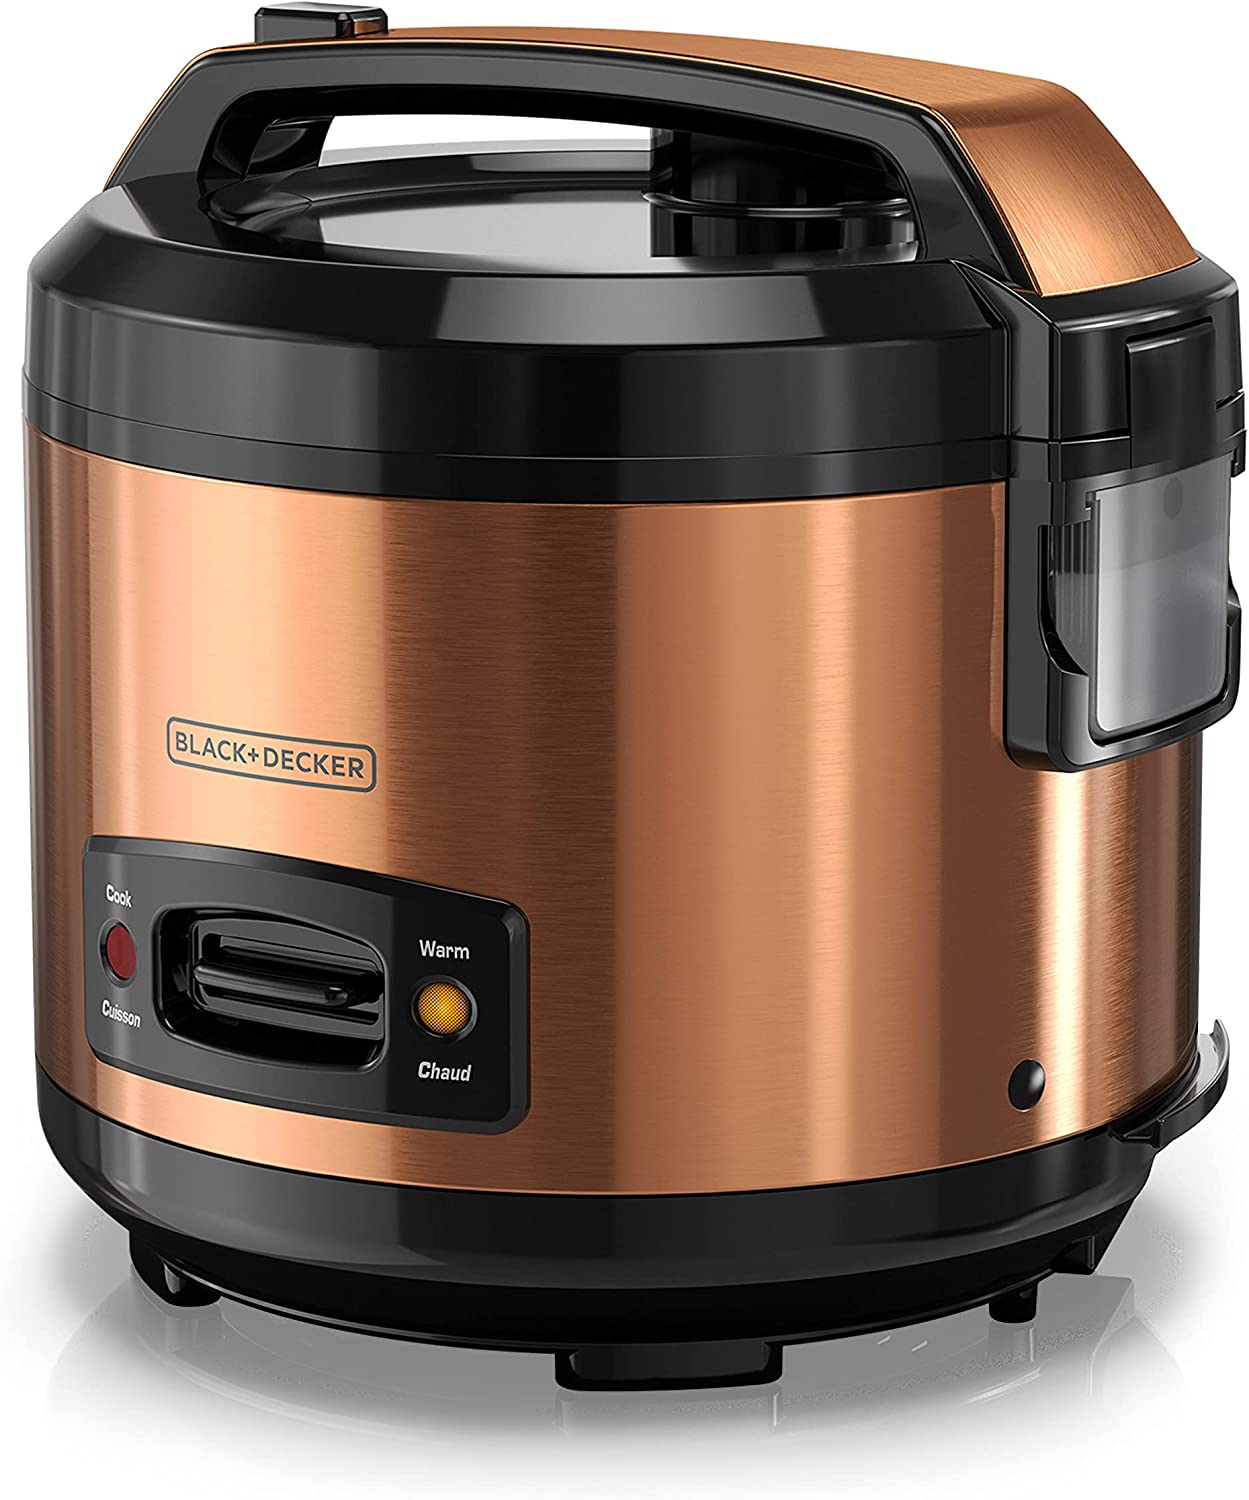 BLACK+DECKER 14-Cup Rice Cooker with Locking Lid, Copper, RC1014CD